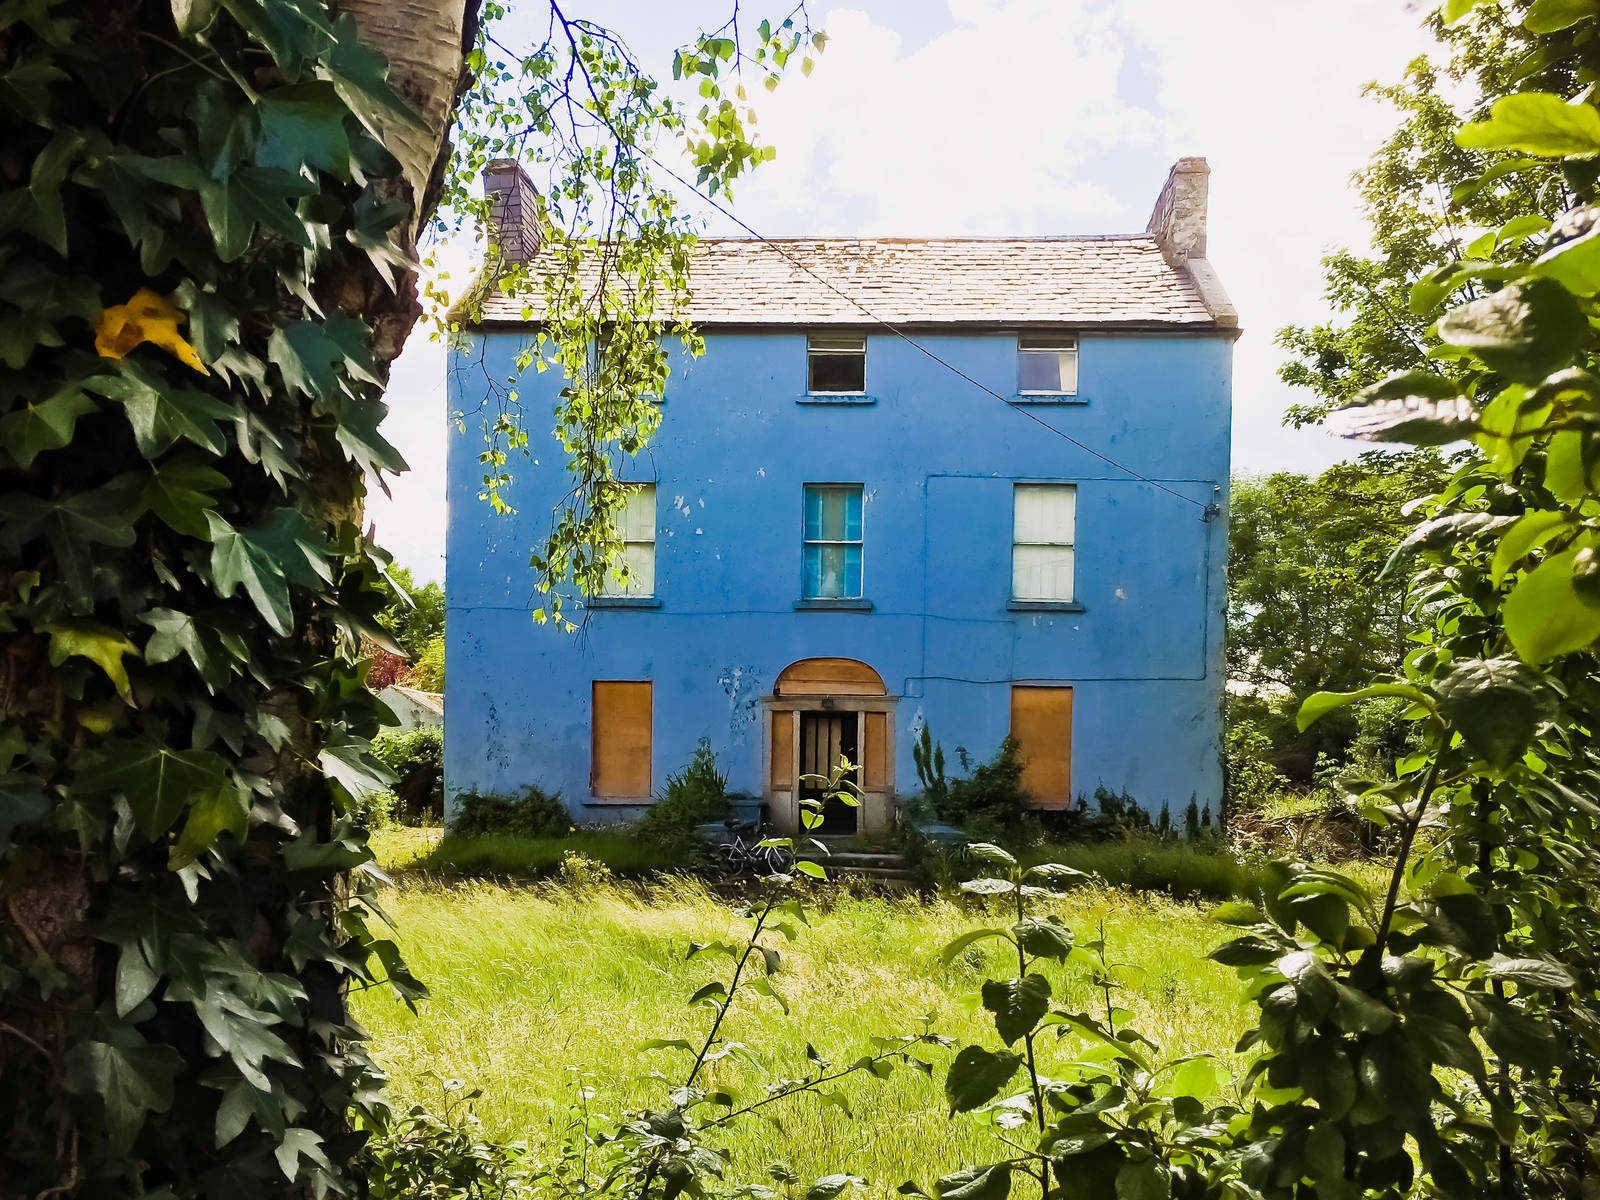 Ruined house in Sandyford Village, Dublin